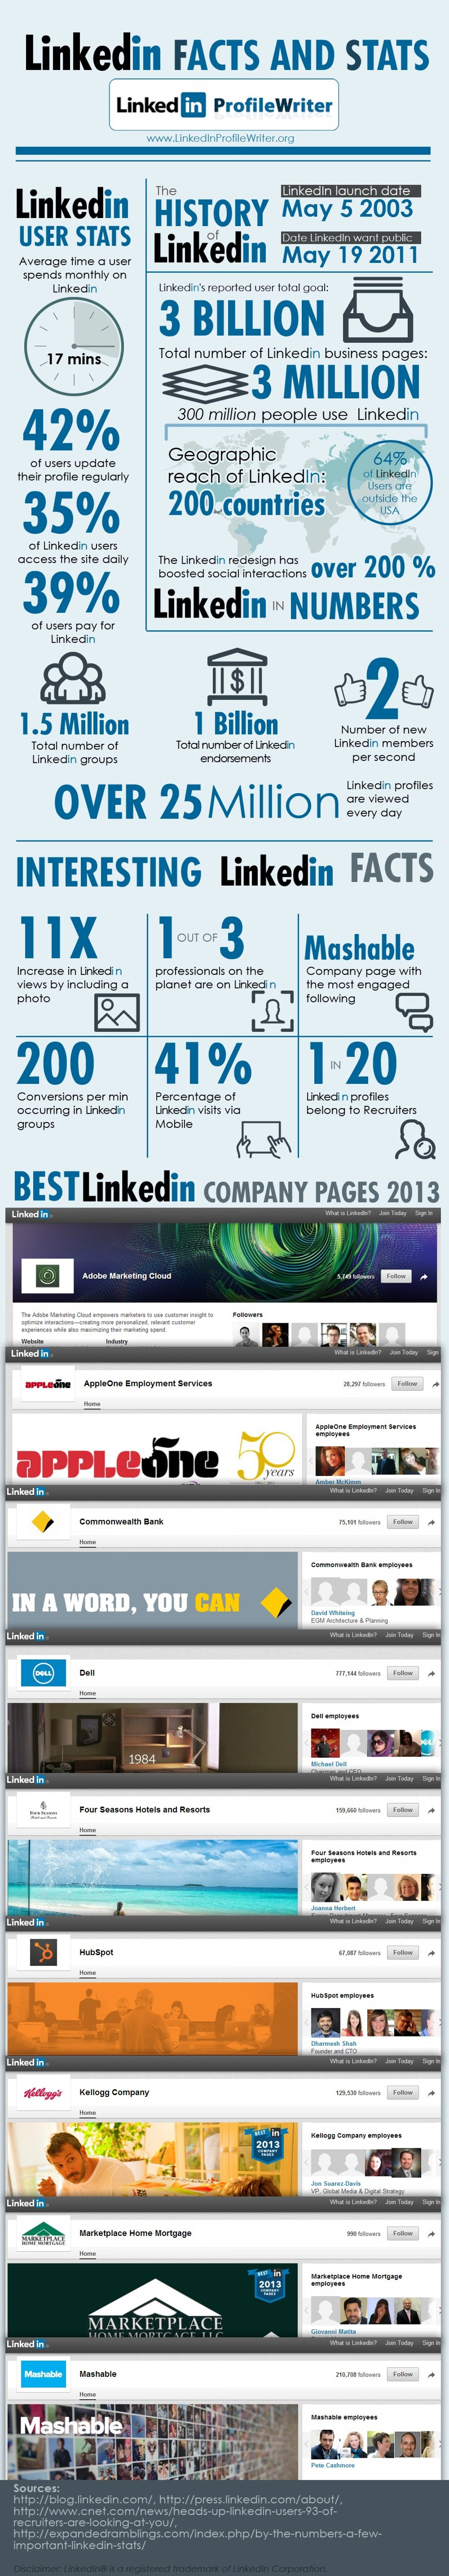 linkedin-facts-and-stats-infographic_53c4b32fb298b_w1500.jpg